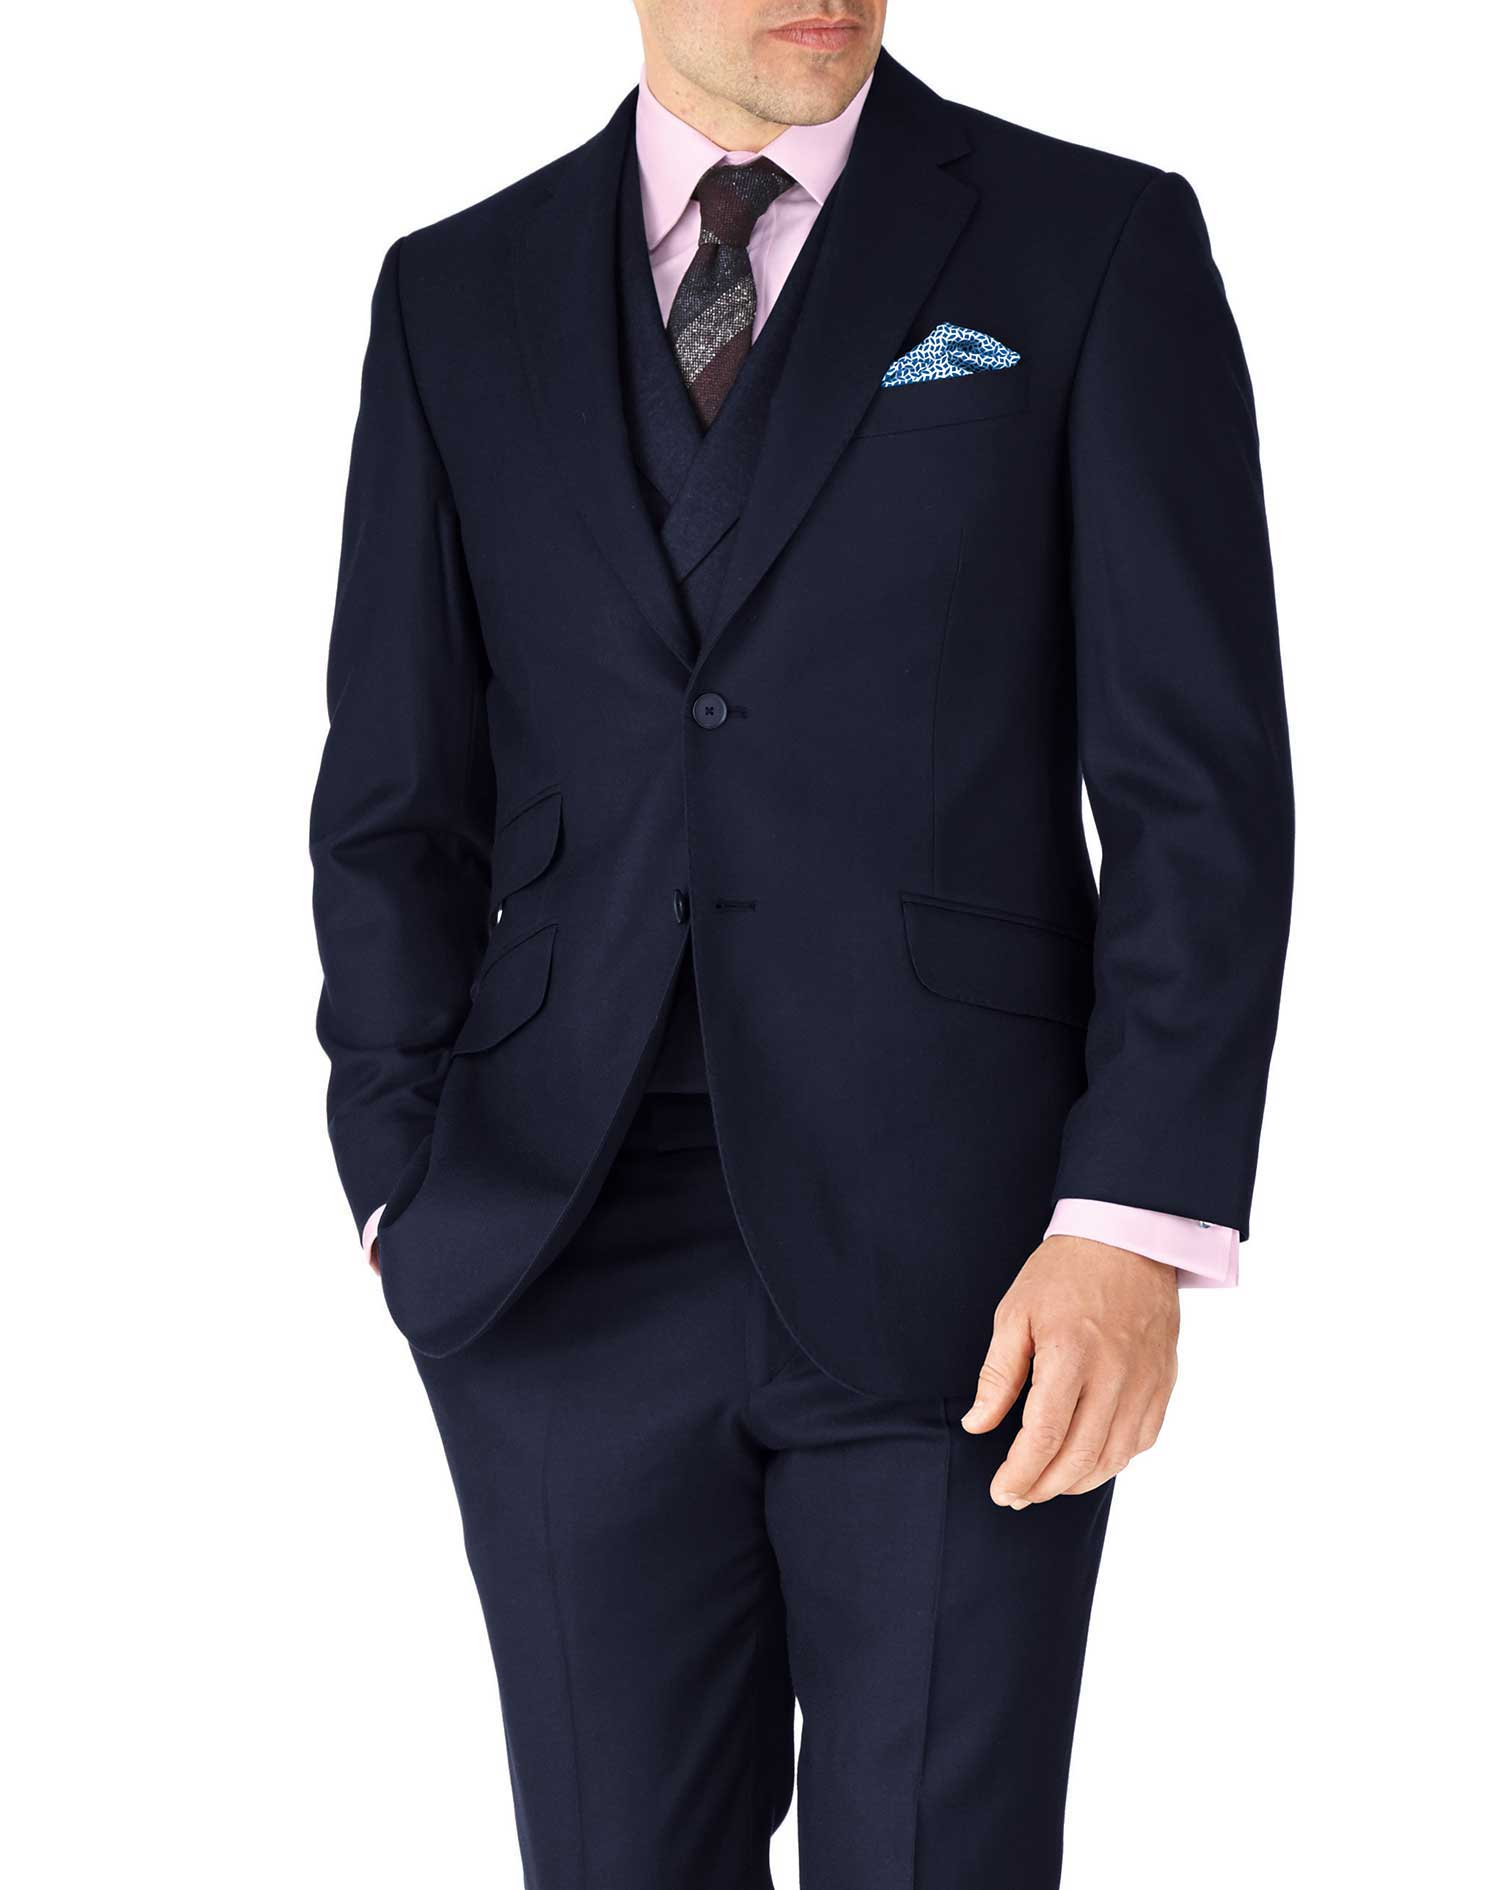 Navy Classic Fit British Serge Luxury Suit Wool Jacket Size 38 Short by Charles Tyrwhitt